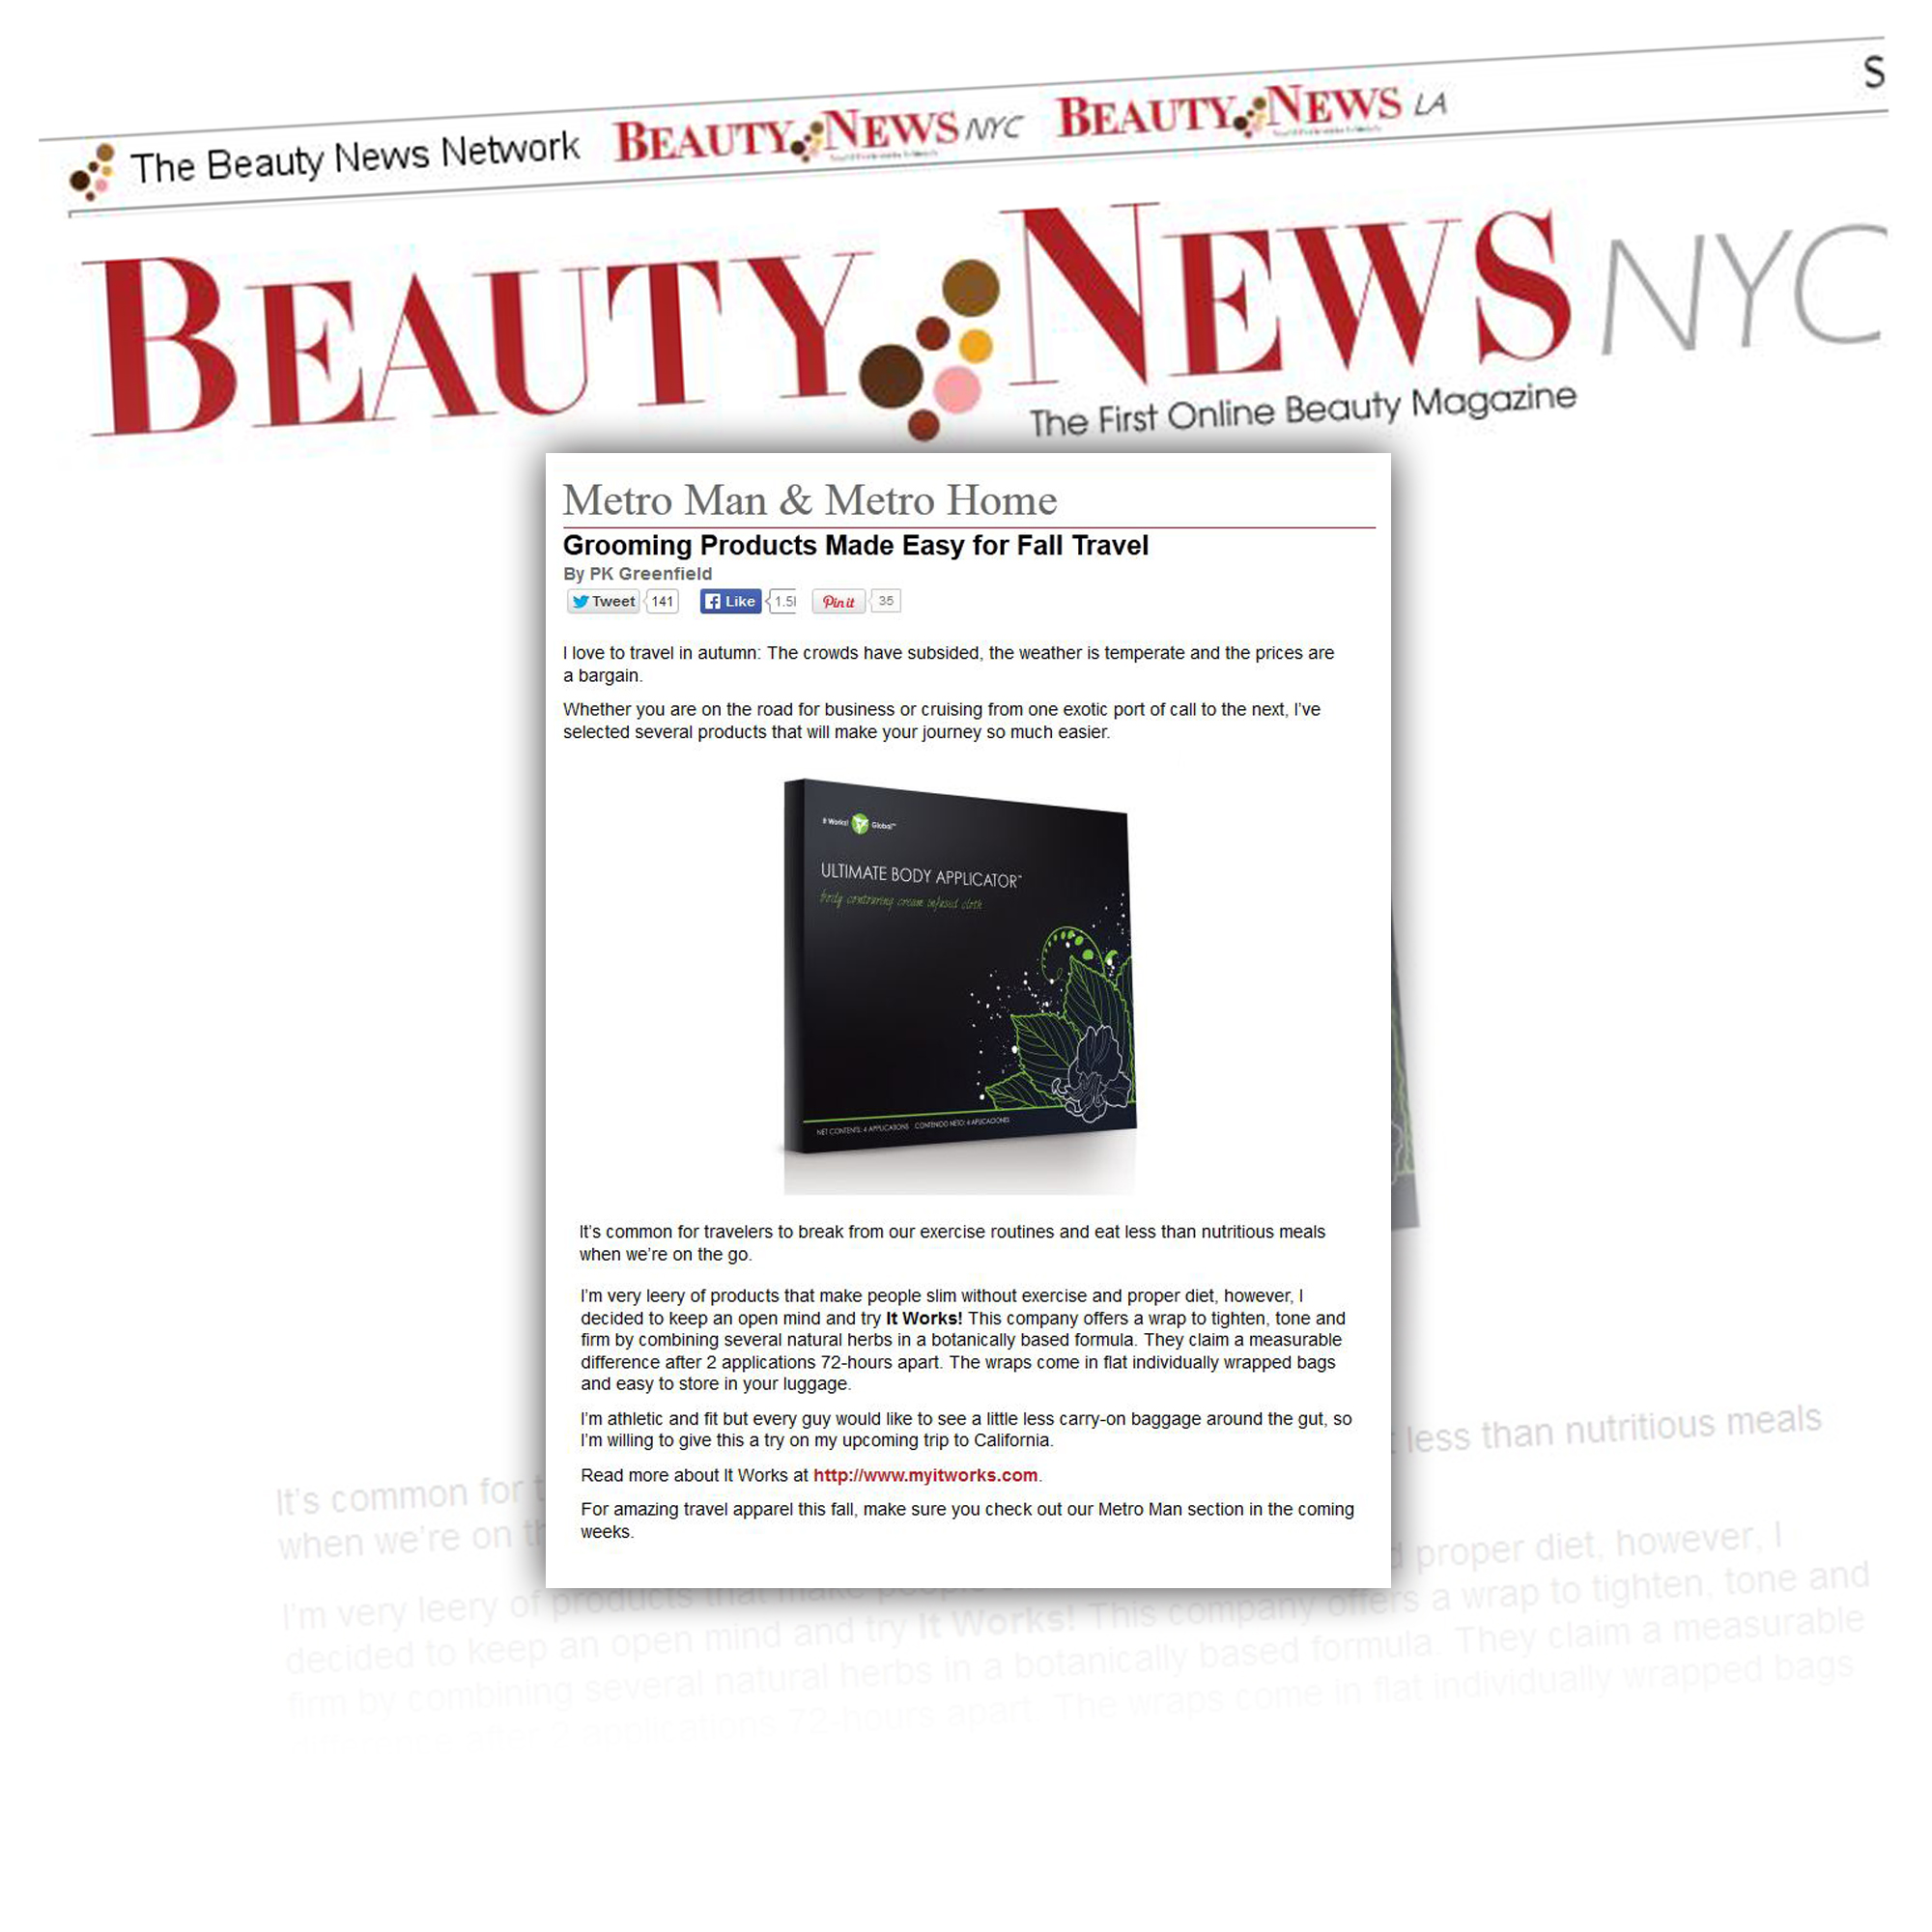 Axia helps beauty and wellness company reach 1.5 billion consumers